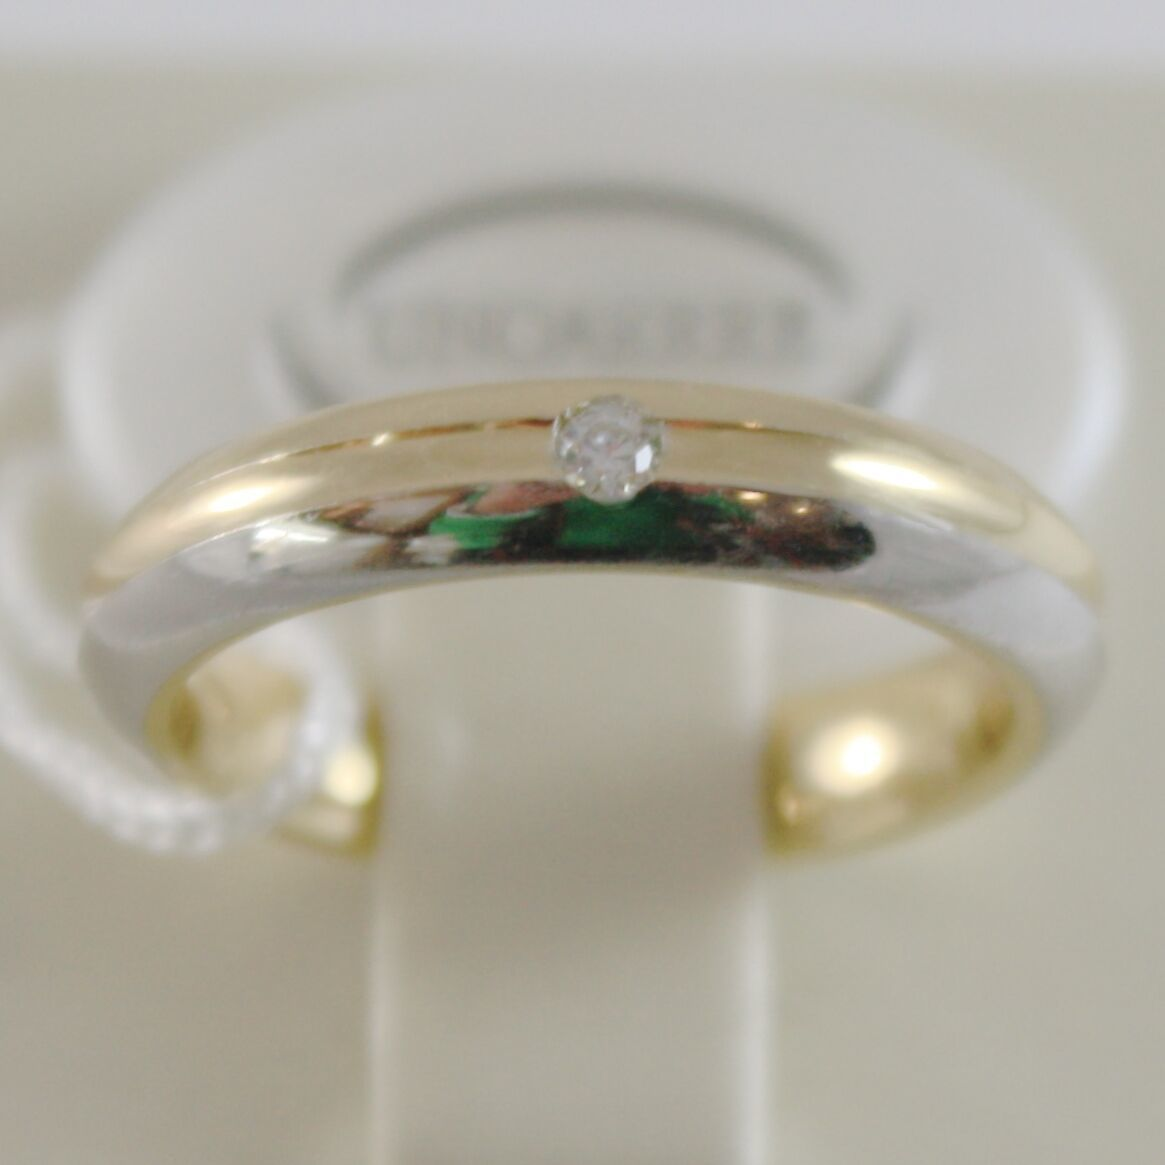 18K YELLOW WHITE GOLD WEDDING BAND UNOAERRE RING 4 MM WITH DIAMOND MADE IN ITALY